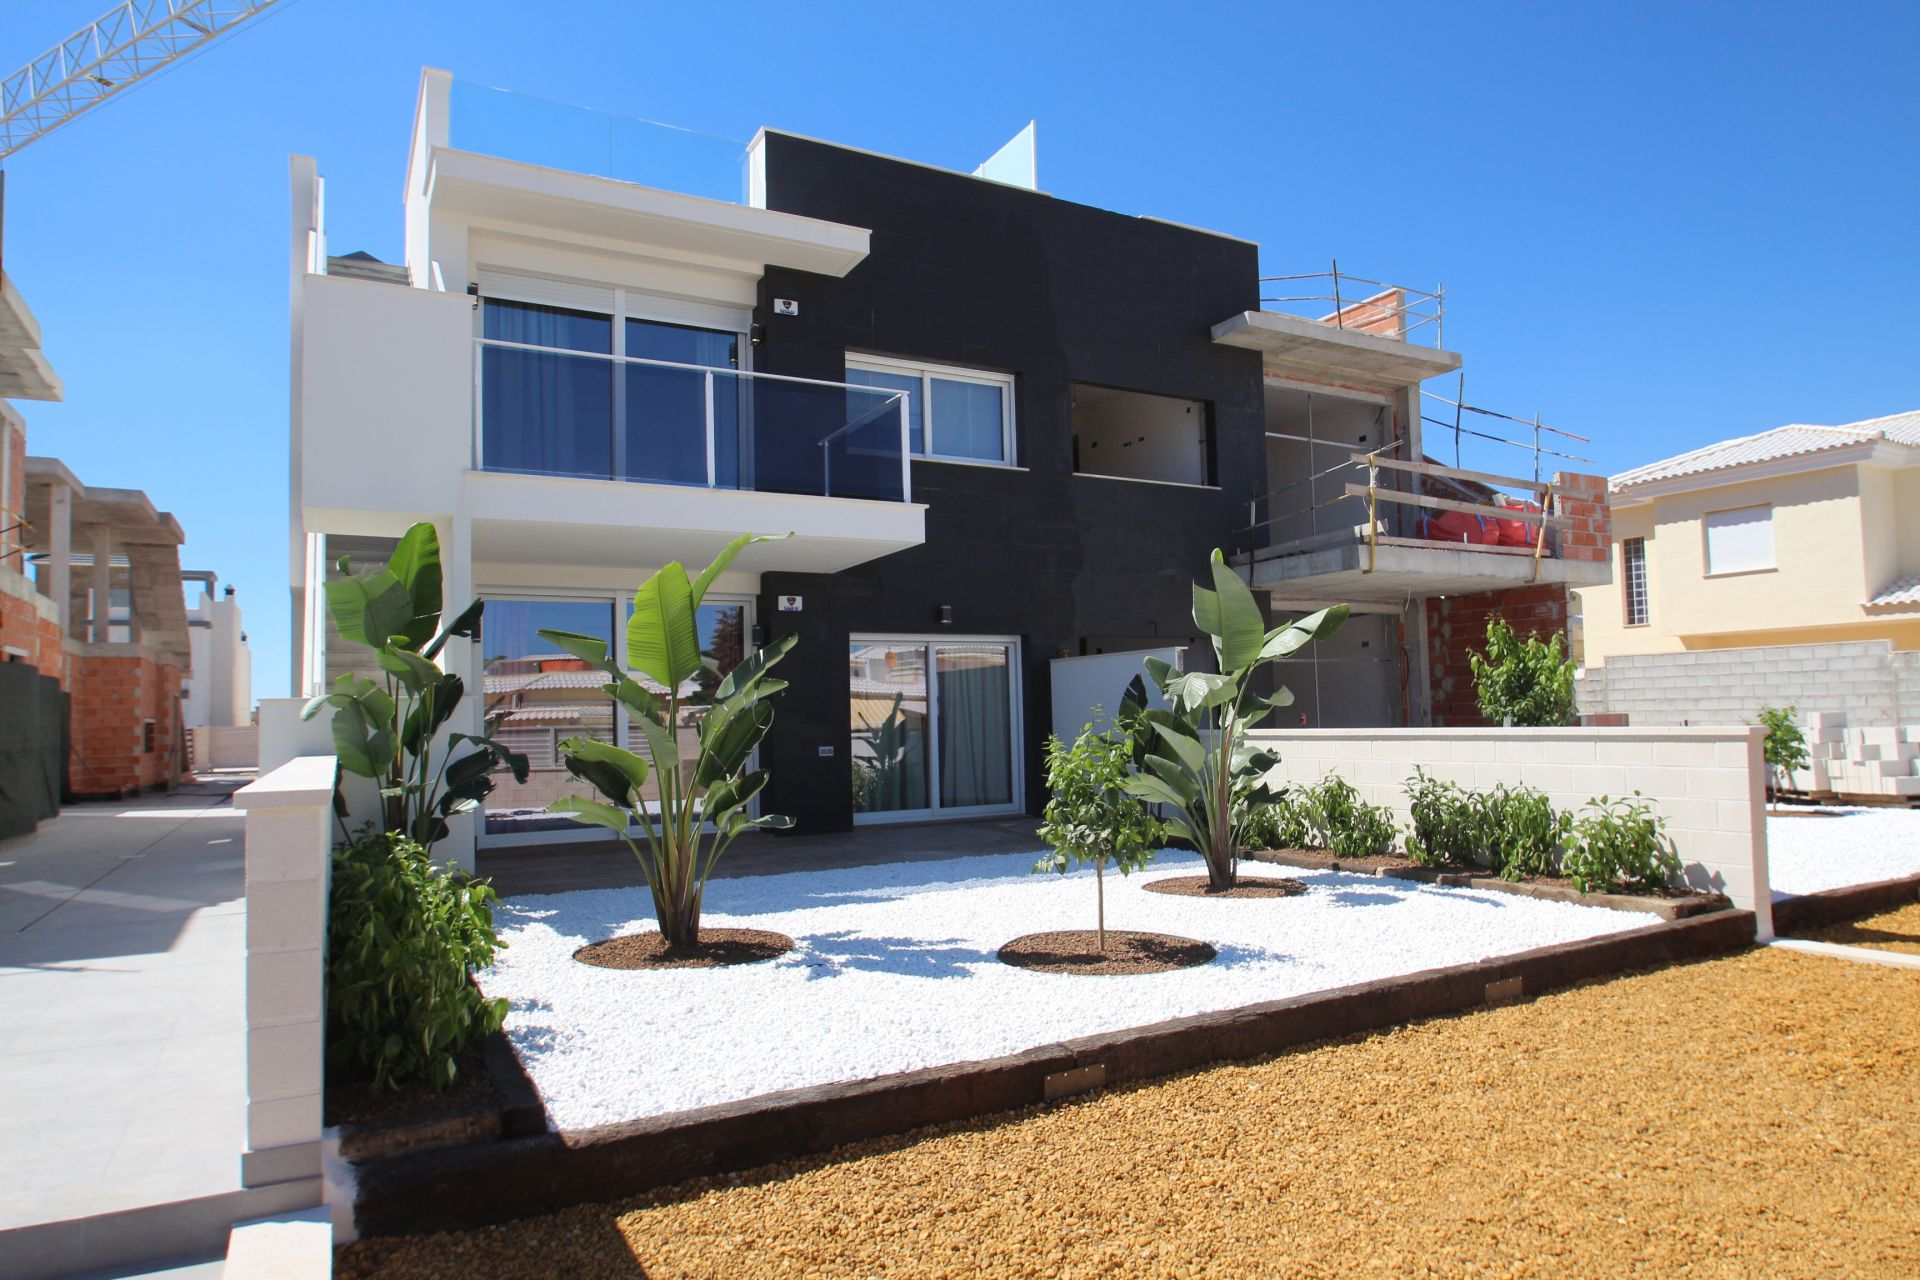 3 bedroom modern bungalows with garden or solarium in Torrevieja 1